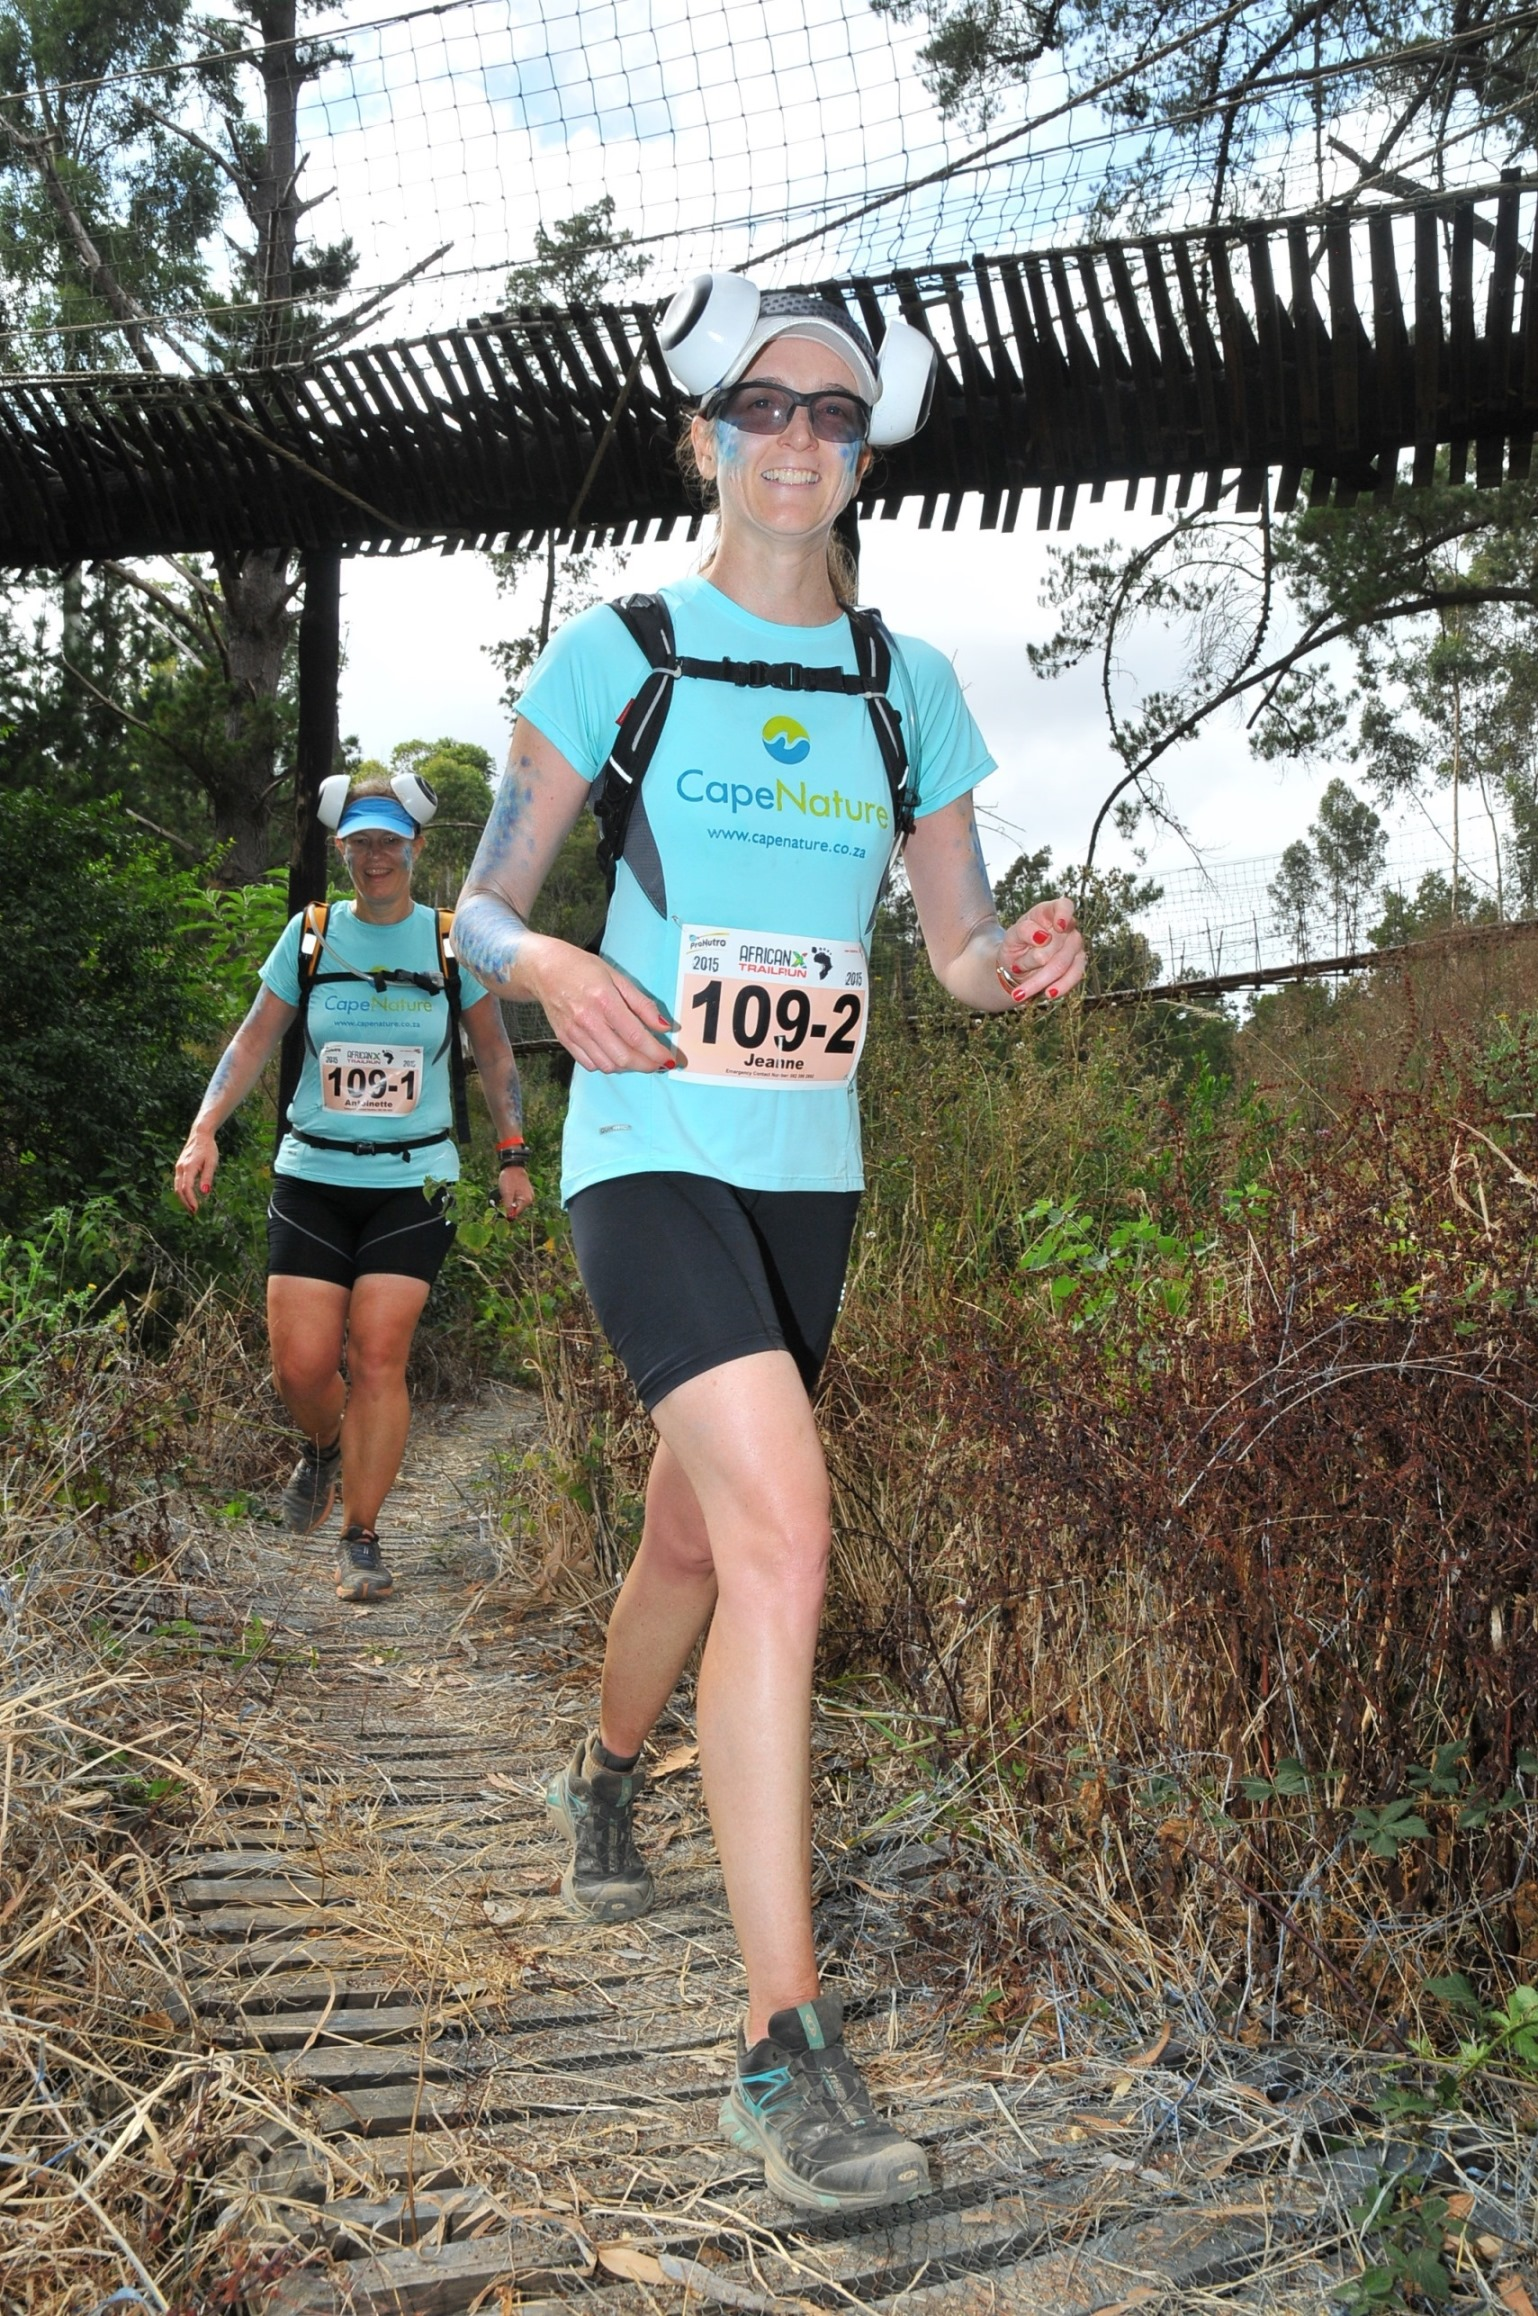 Stillwater Sports, the organisers of South Africa's premier three day stage trail run, the AfricanX Trailrun presented by ASICS, are excited to continue working alongside CapeNature to ensure that the 8th running of this much talked about event is the most memorable one yet. Seen here (front to back):  Cape Nature's trail running team, Jeanne Gous and Antoinette Veldtman in action during the 2015 AfricanX Trailrun presented by ASICS.  Photo Credit:  Jetline Action Photo